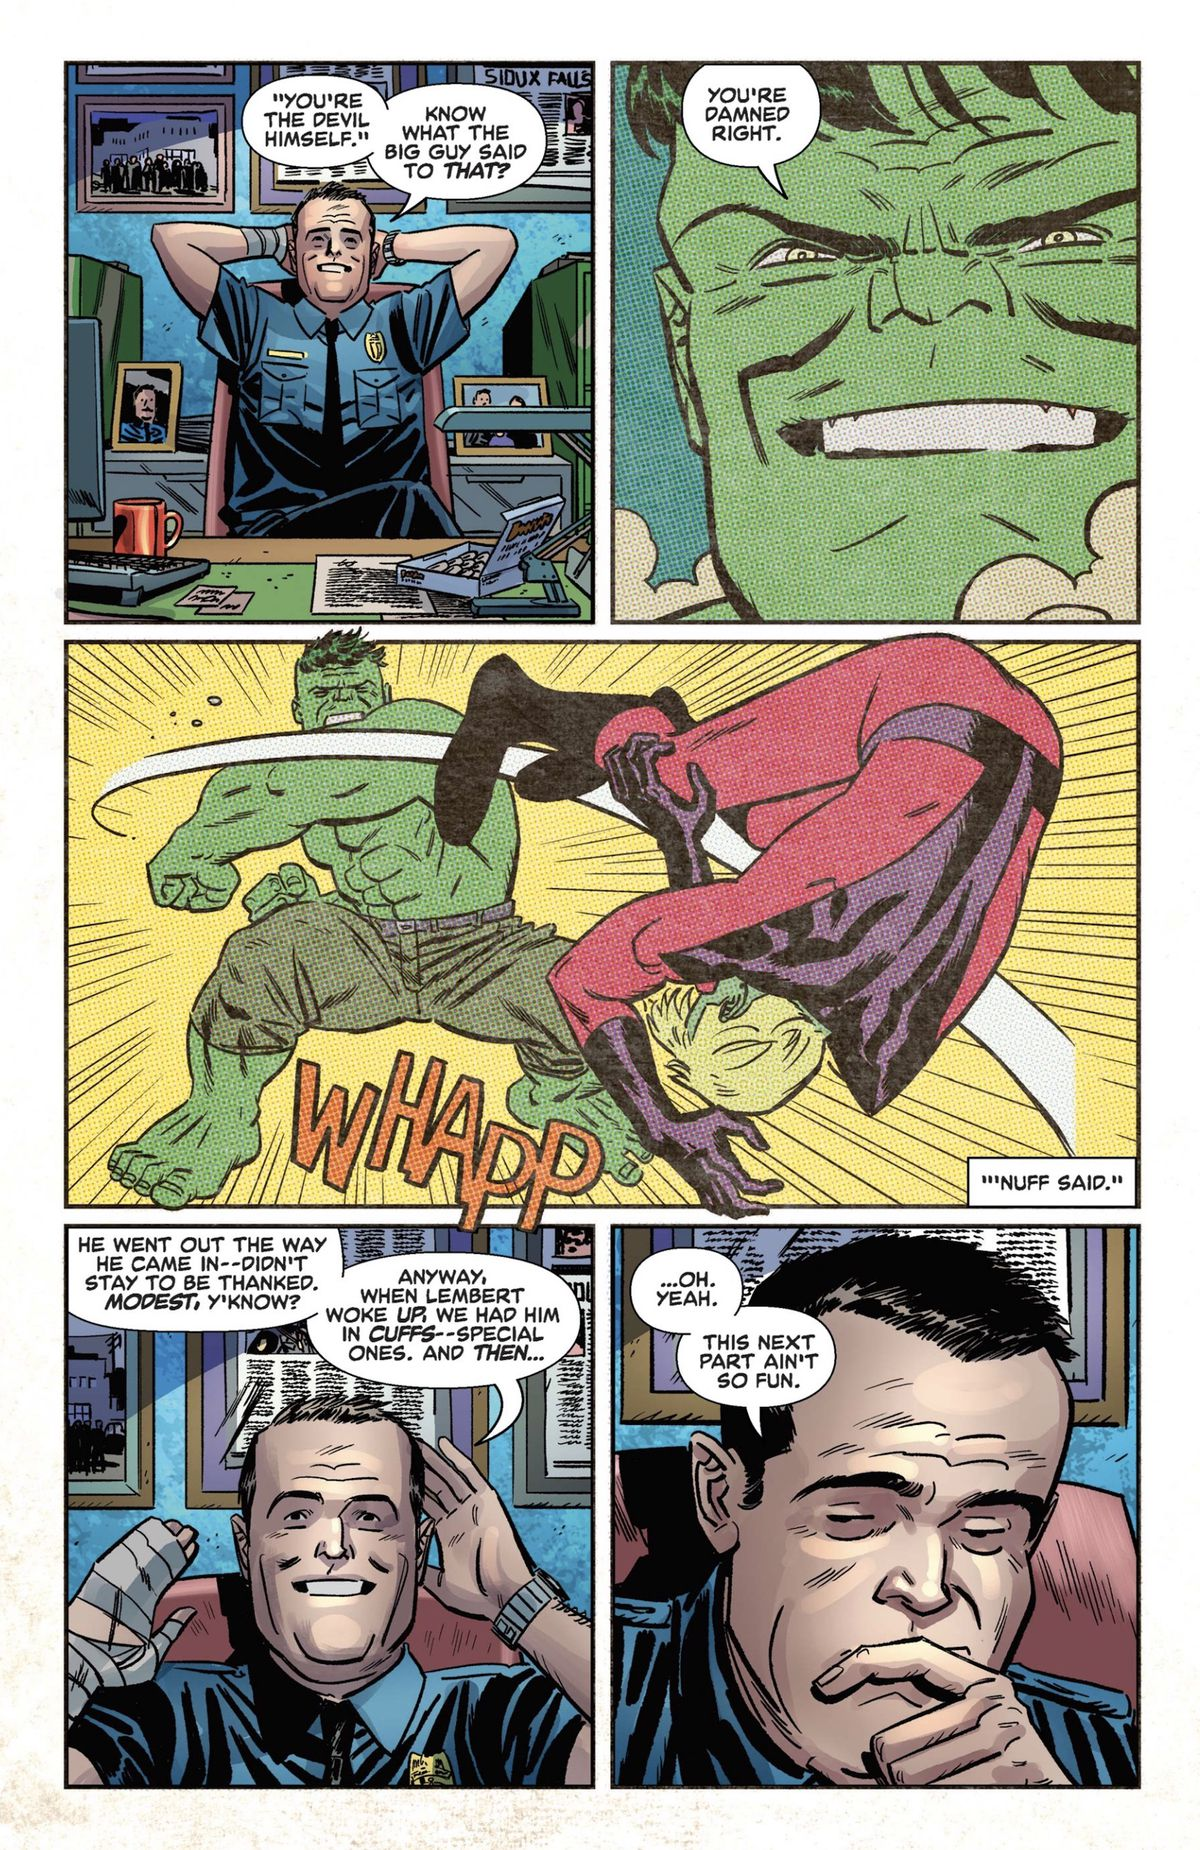 an old timey hulk punches a bad guy as imagined by a security guard